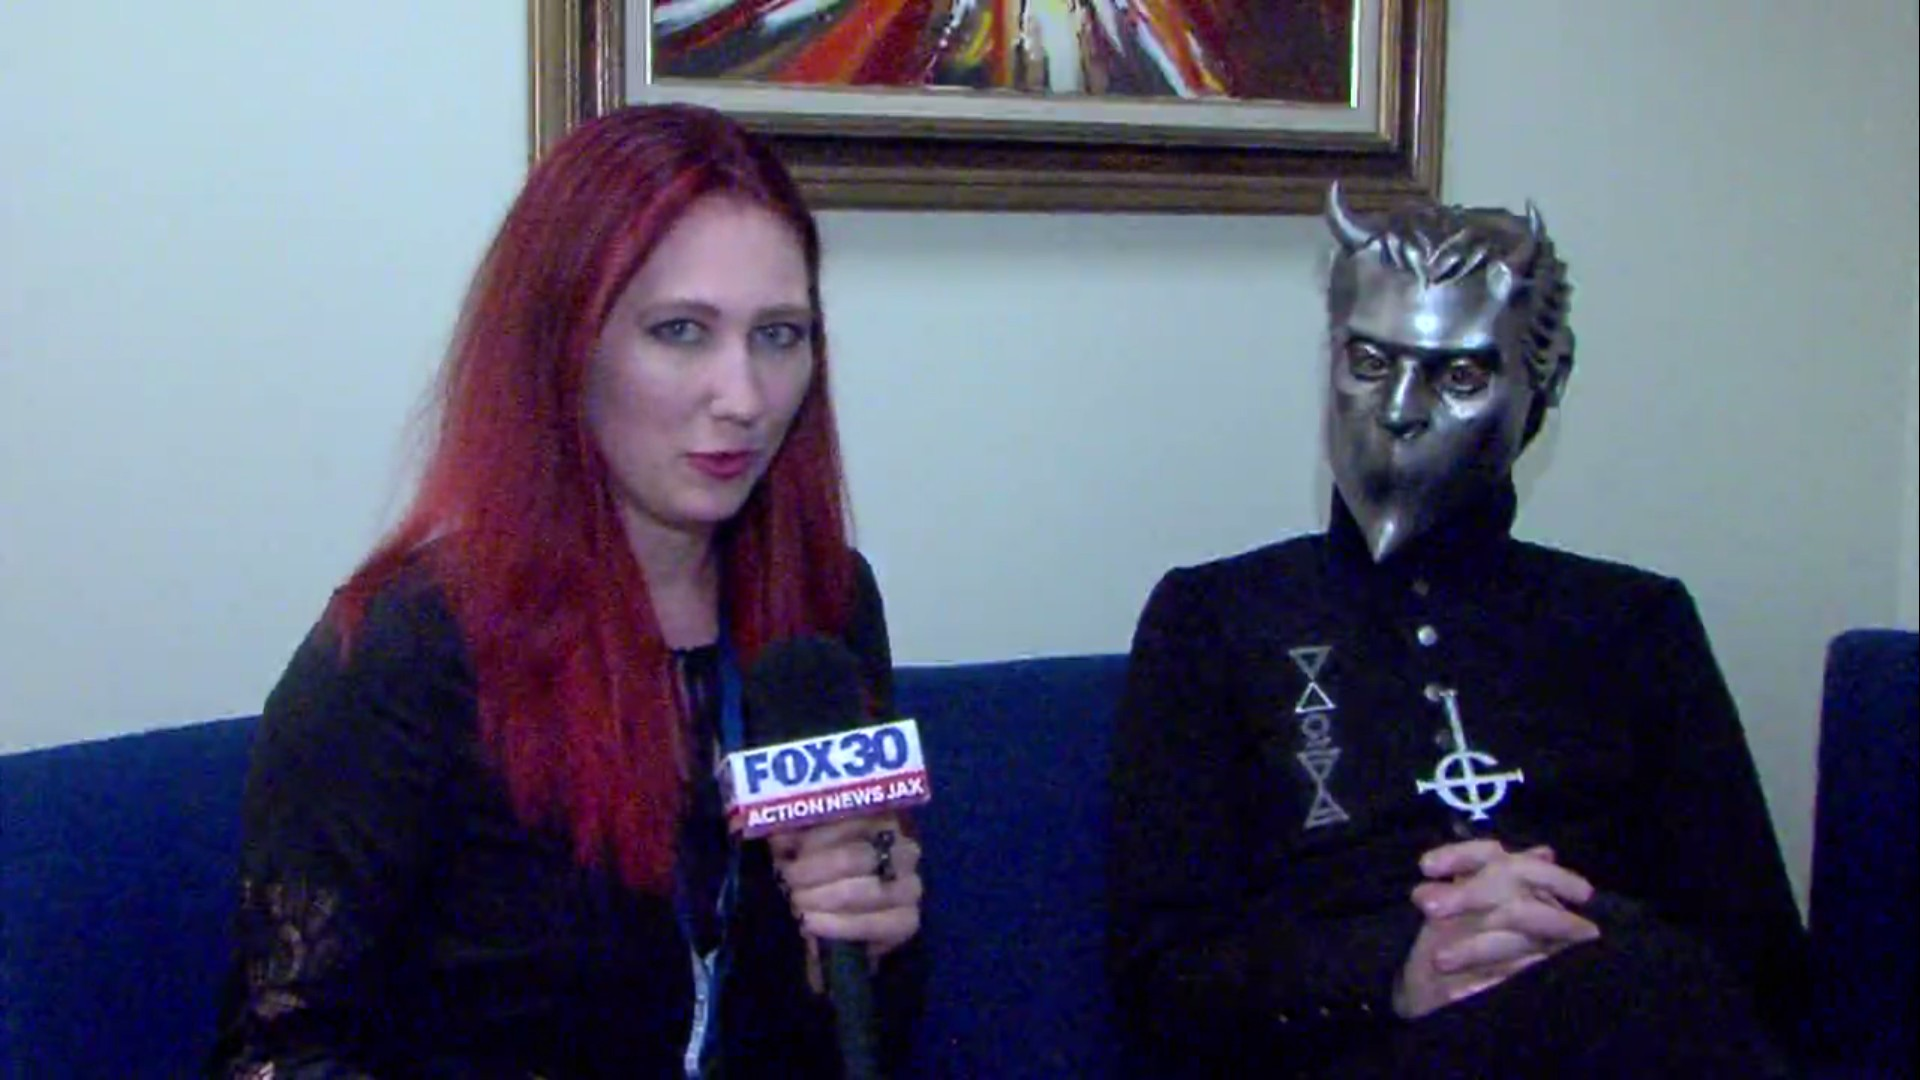 Action News Jacksonville Interviews Ghost